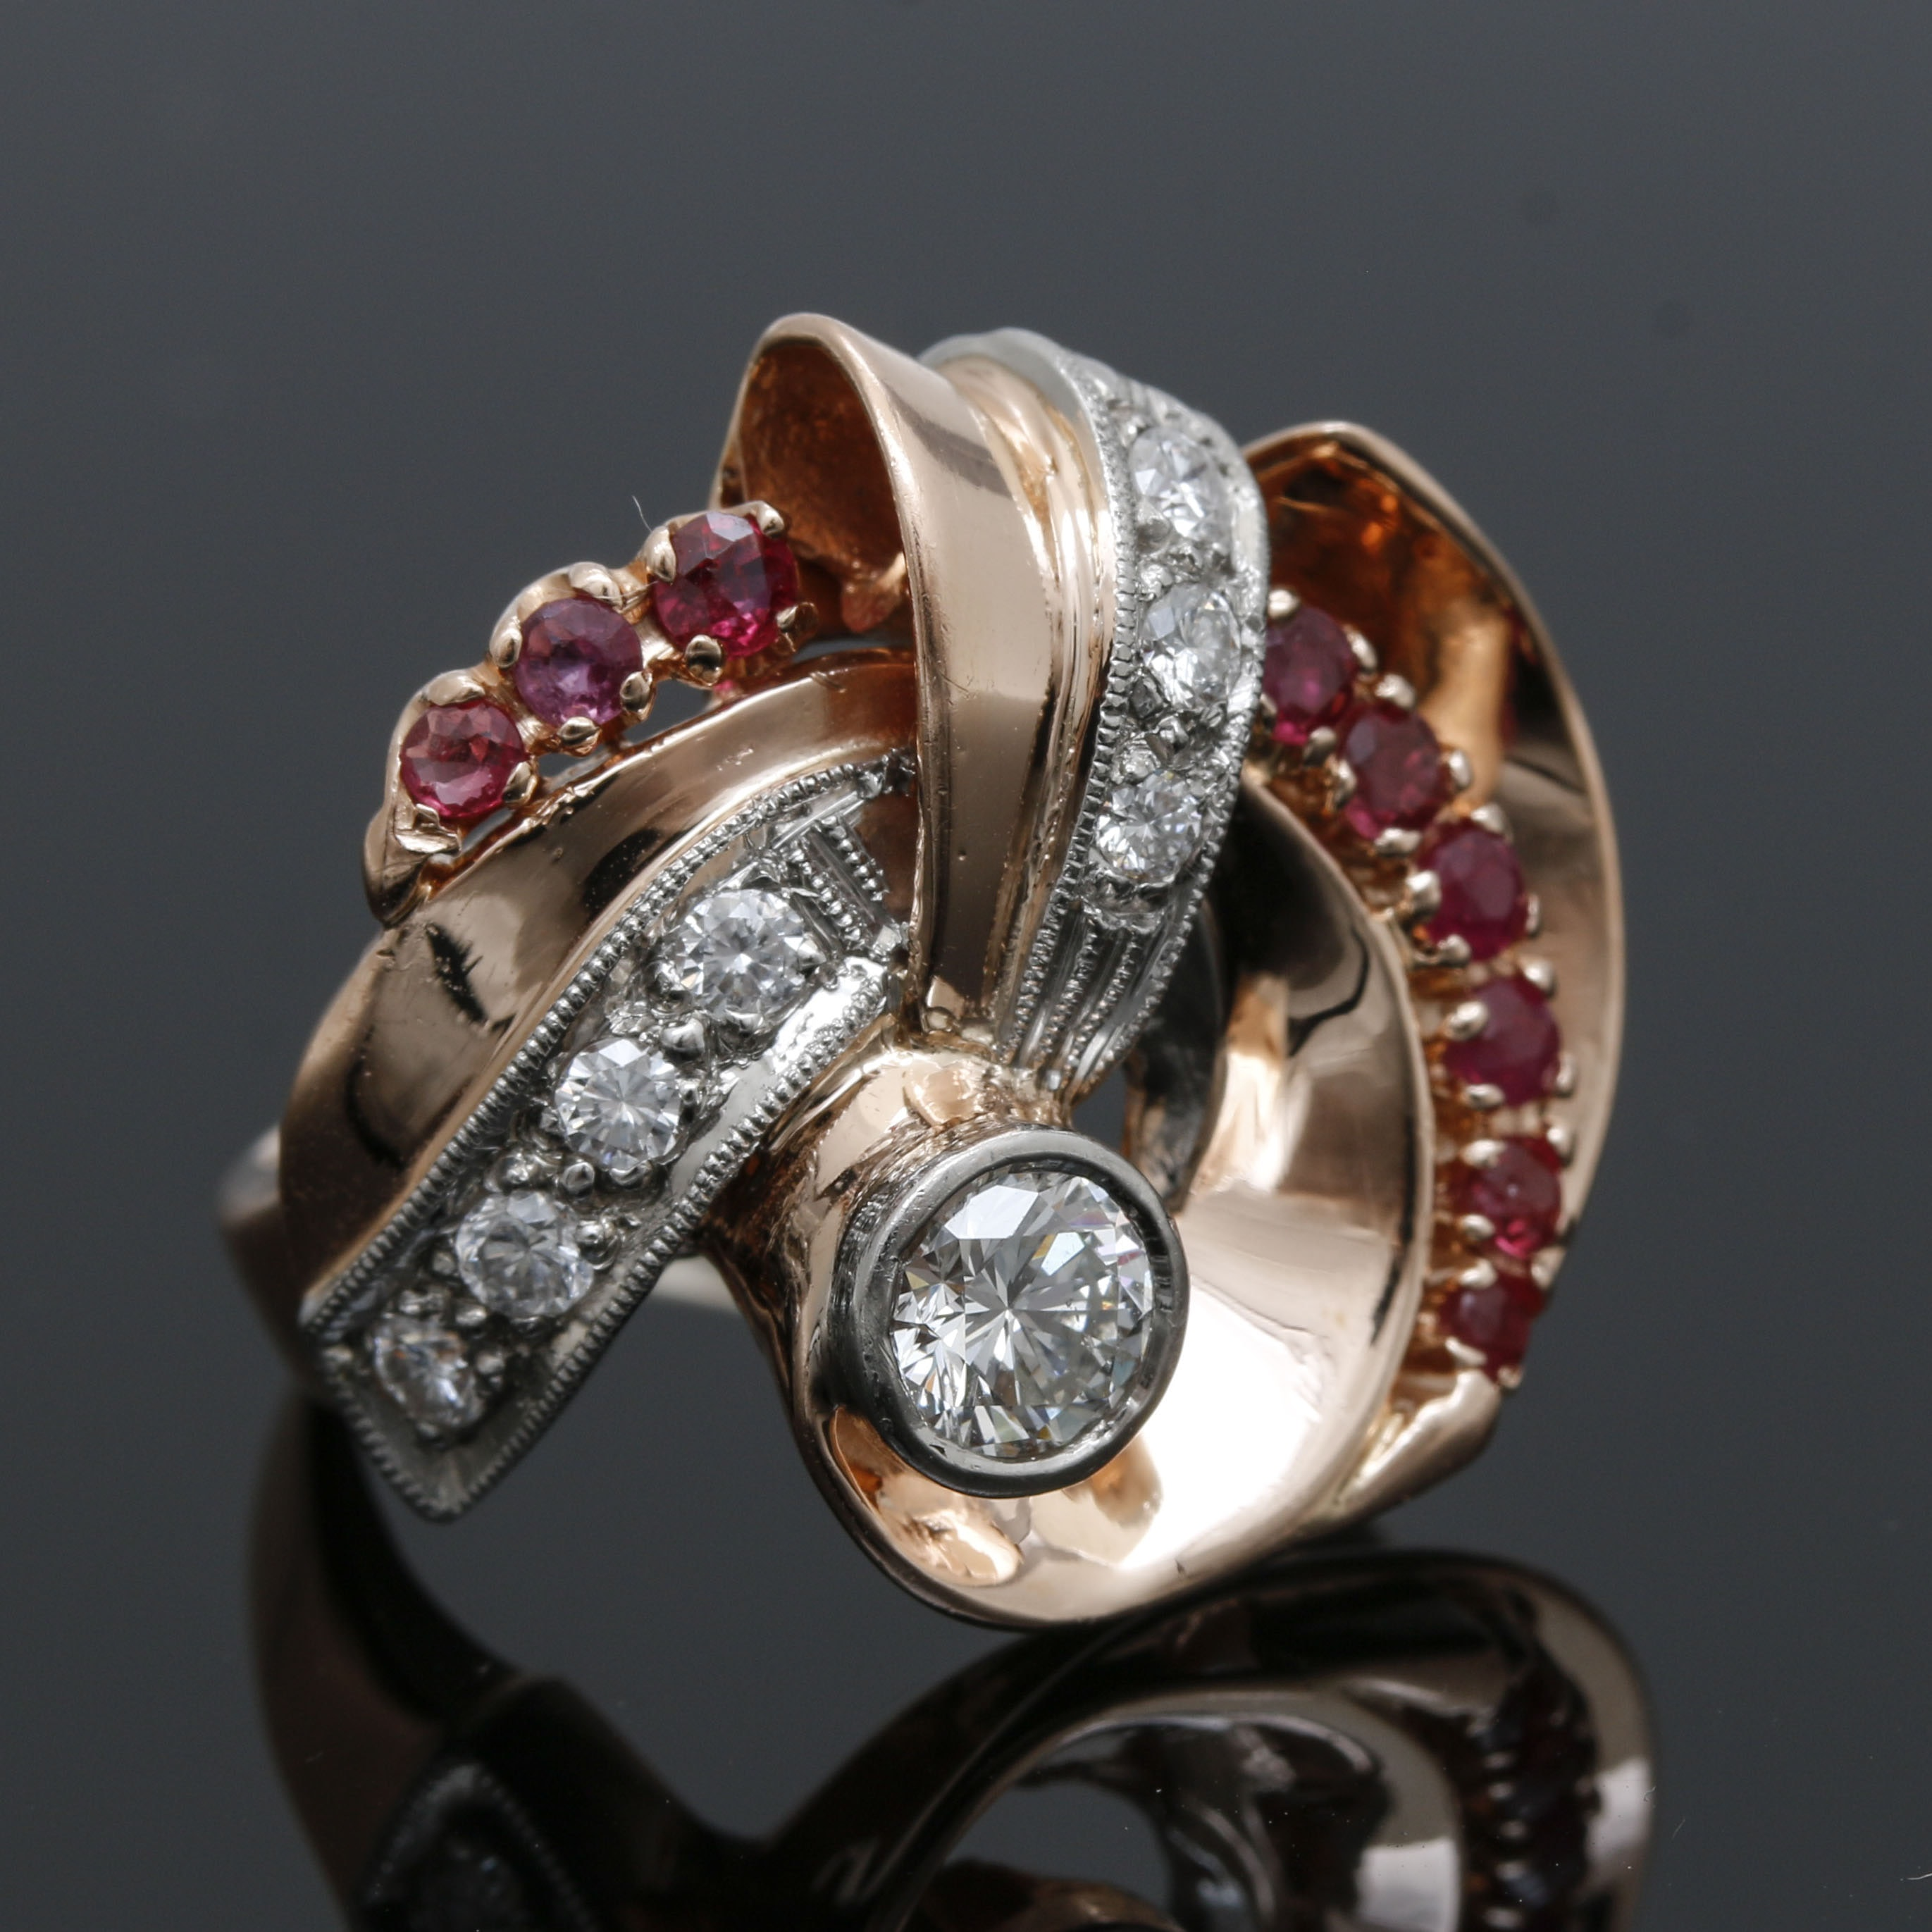 14K Rose Gold Diamond and Ruby Ring with White Gold Accents